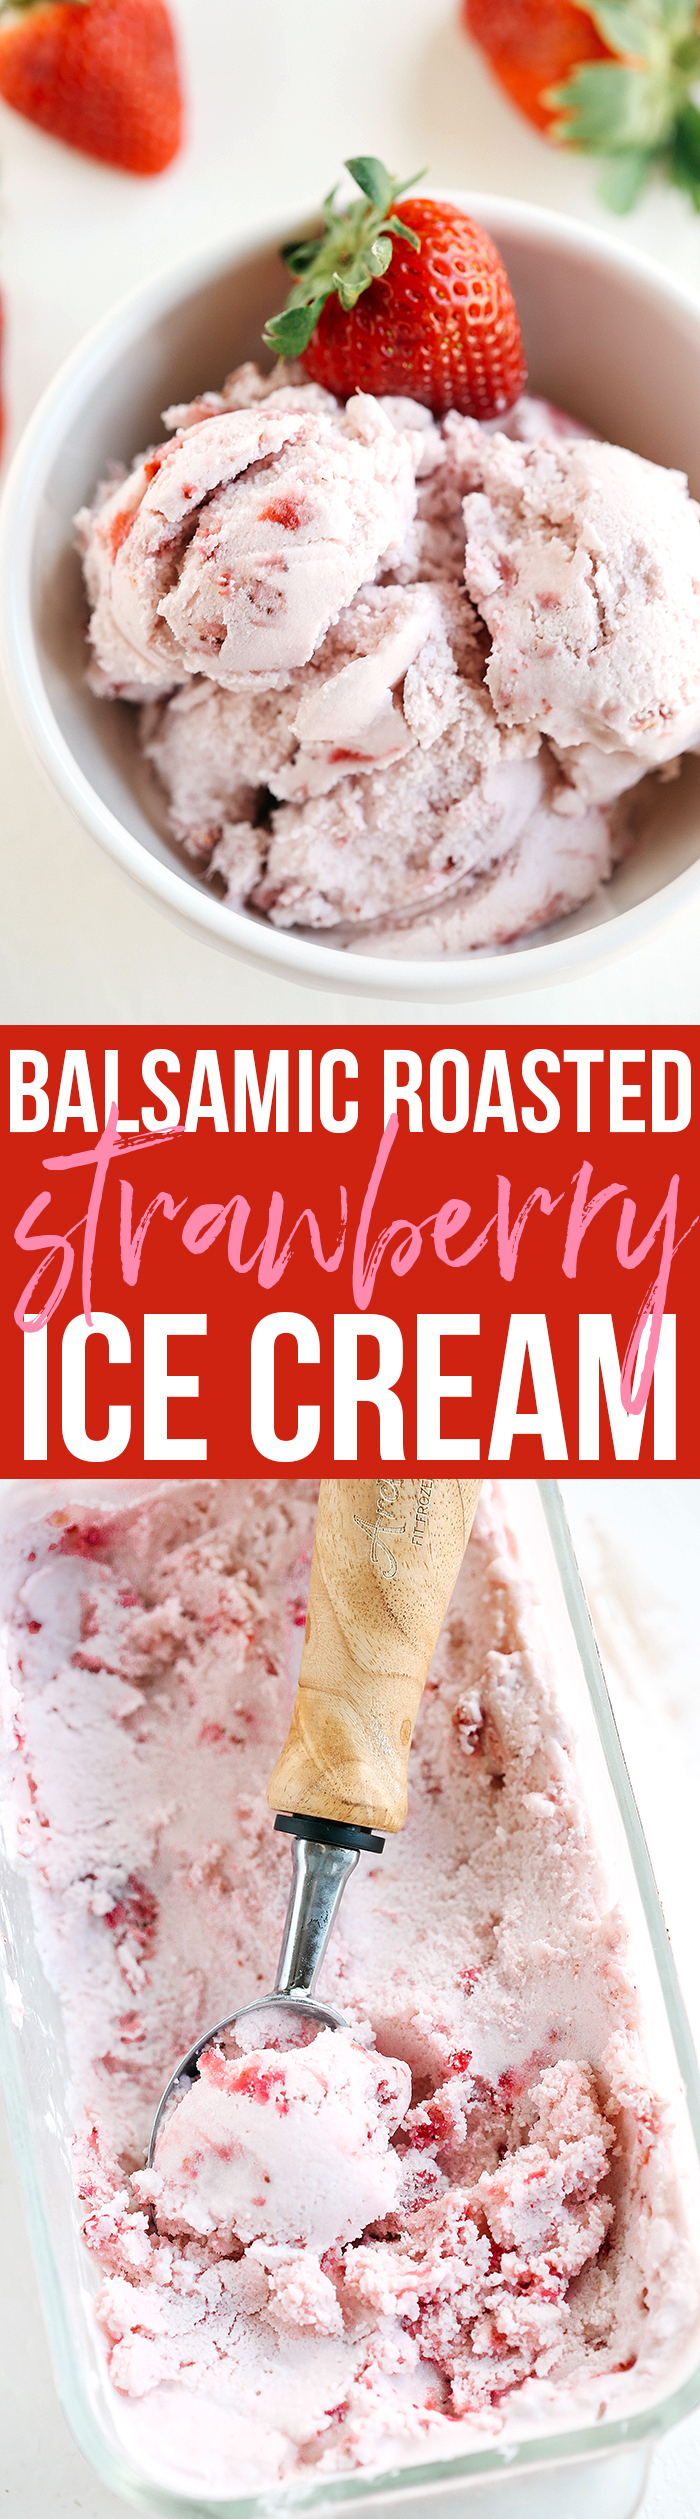 Perfectly sweet and creamy Balsamic Roasted Strawberry Ice Cream that is gluten-free and dairy-free with big chunks of strawberry in every bite!